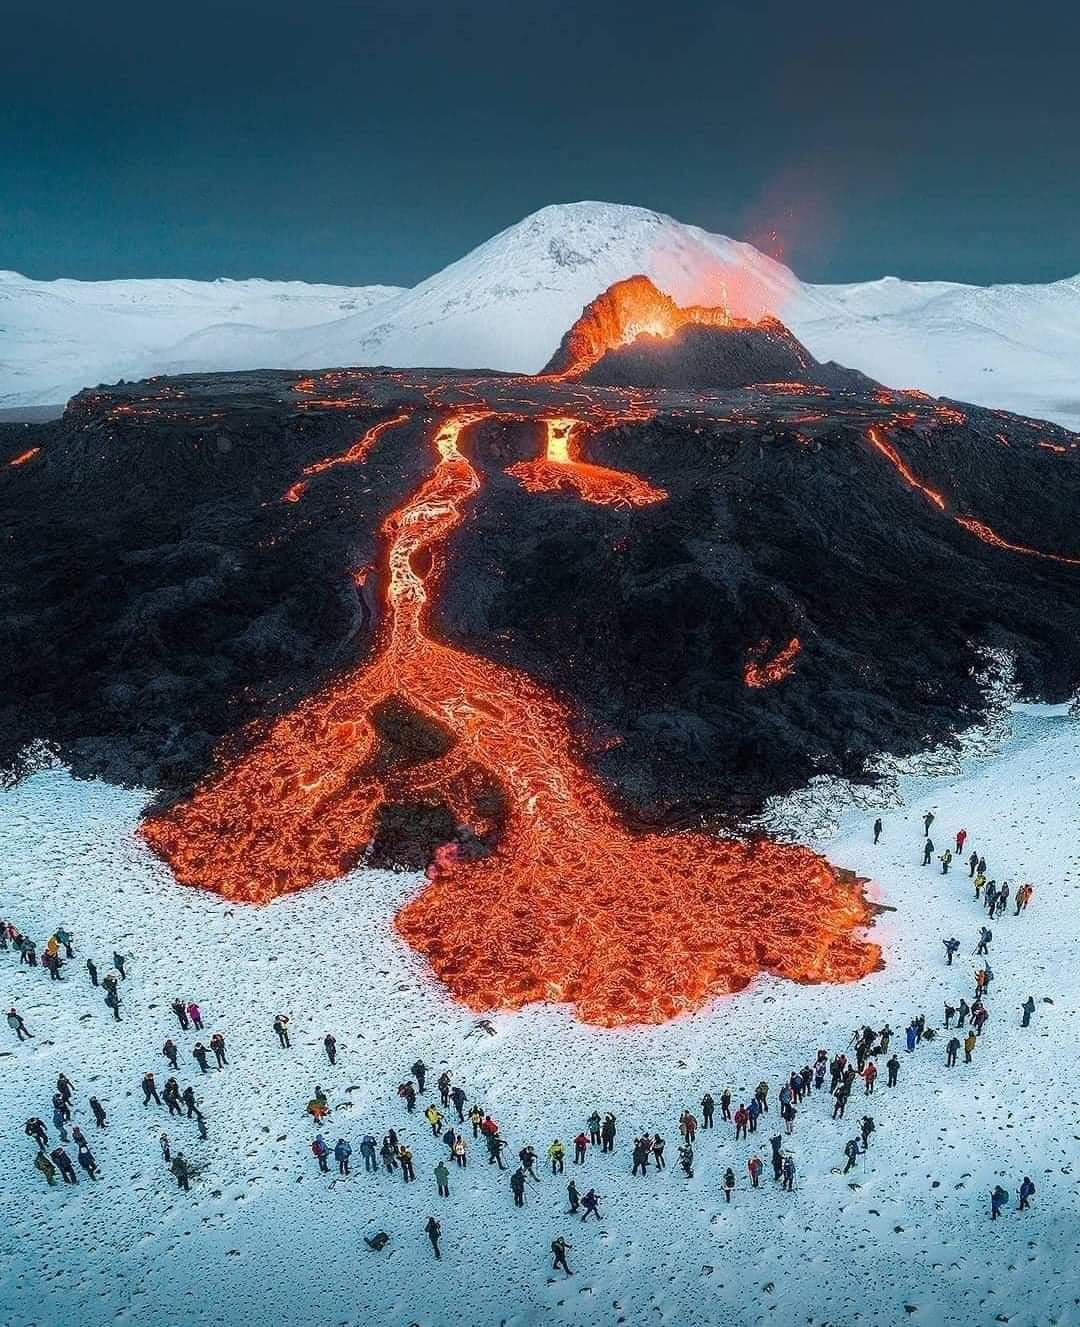 ONE Pic - Stunning photo of fire and ice! Iceland